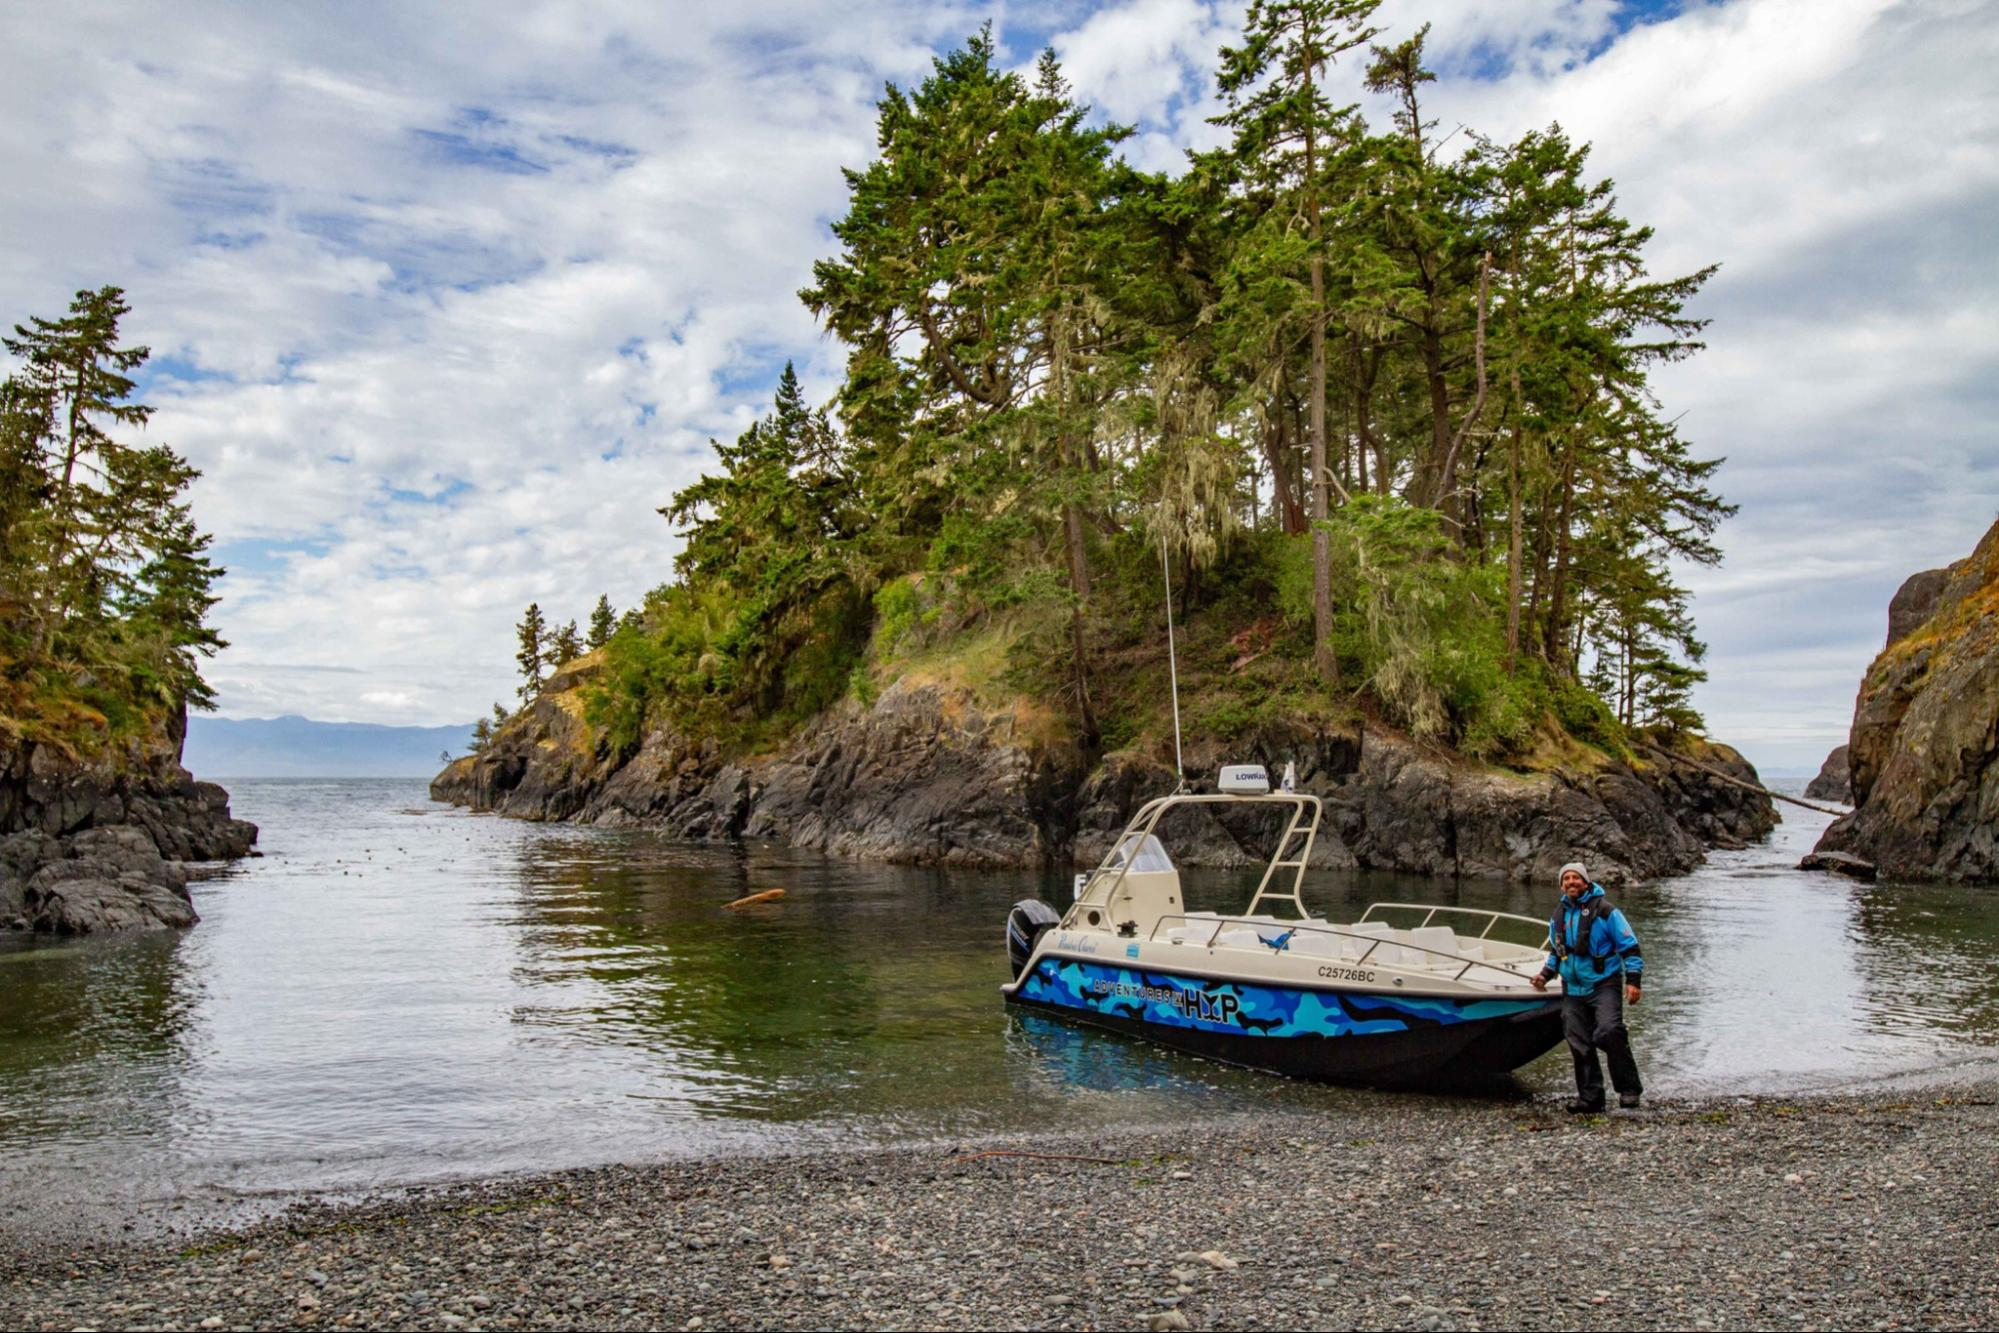 Mike Walsh and Sarah Pillon want to have the coolest adventure company in Sooke